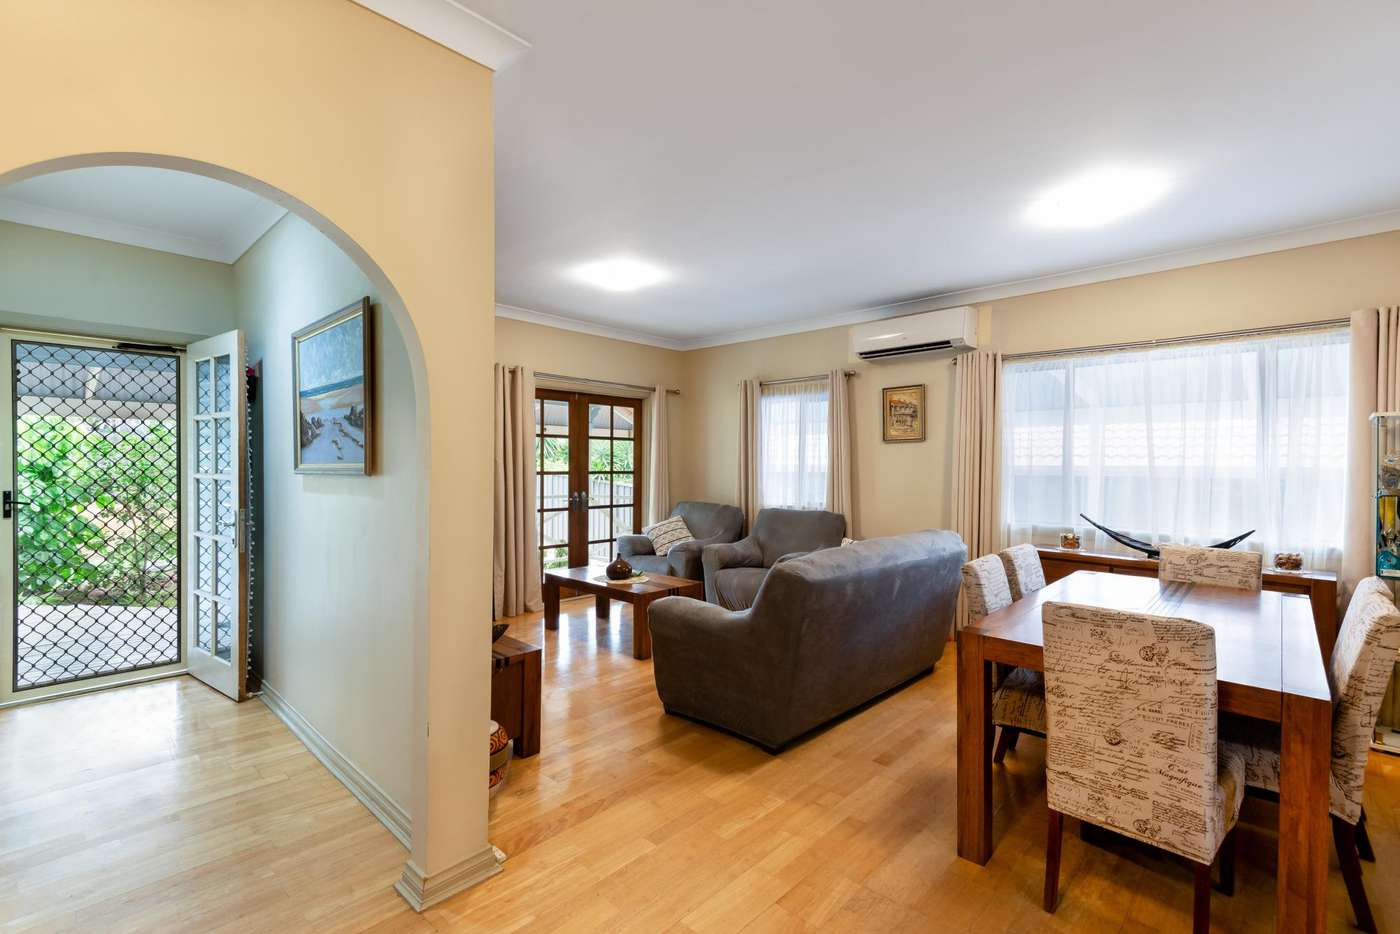 Sixth view of Homely house listing, 51 Fiddaman Road, Emerald Beach NSW 2456